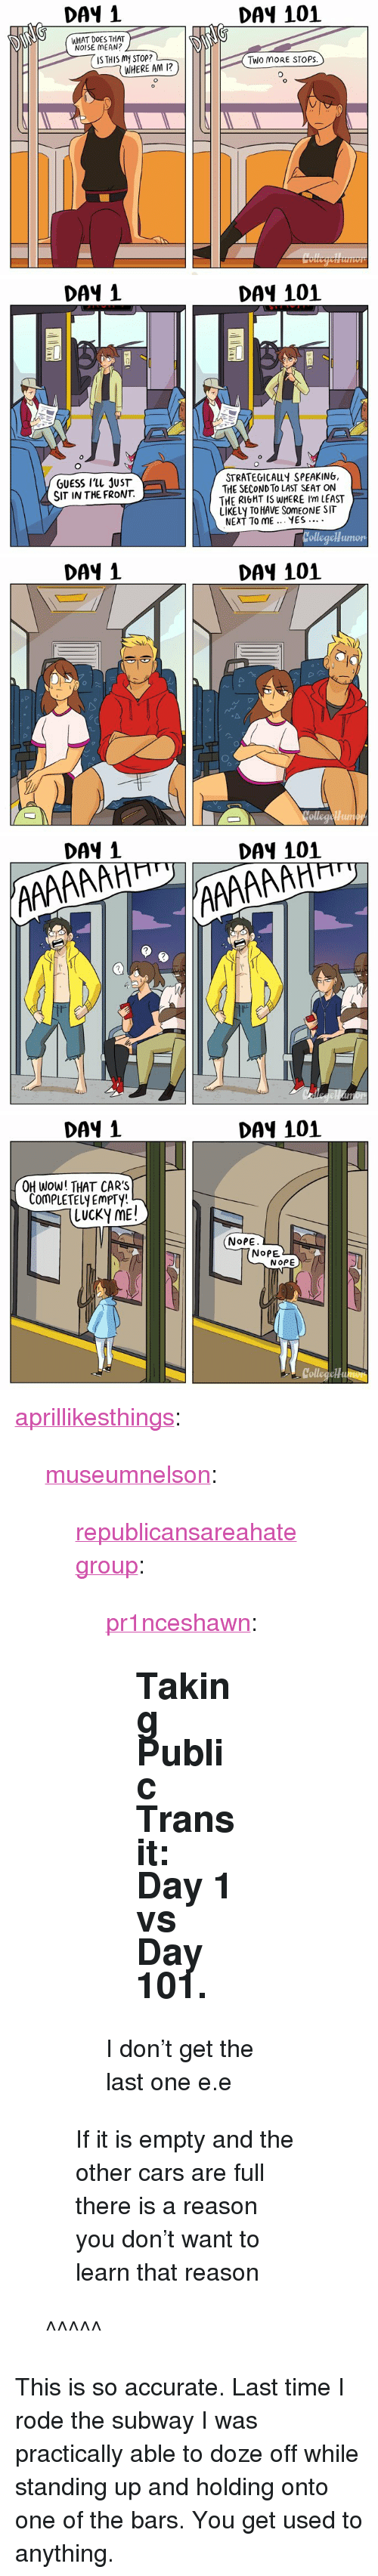 """Nope Nope: DAY 1  DAY 101  WHAT DOES THAT  NOISE MEAN?  IS THIS MY STOP?  Two MoRE STOPS.  WHERE AM 12   DAY 1  DA4 101  STRATEGICALLY SPEAKING,  THE SECOND To LAST SEAT ON  THE RIGHT IS WHERE I'm LEAST  LIKELY TO HAVE SOMEONE SIT  NEXT TO ME.. YES..  GUESS ILL JUST  SIT IN THE FRONT.  umon   DAY 1  DAY 101   DAY 1  DAY 101  2  7   DAY 1  DAY 101  OH WoW! THAT CARS  COmPLETELY EmPTy!  (LUCKy ME!  NoPE  NoPE  NOPE  Collegeu <p><a href=""""http://aprillikesthings.tumblr.com/post/164514420032/museumnelson-republicansareahategroup"""" class=""""tumblr_blog"""">aprillikesthings</a>:</p><blockquote> <p><a href=""""http://museumnelson.tumblr.com/post/164506824989/republicansareahategroup-pr1nceshawn-taking"""" class=""""tumblr_blog"""">museumnelson</a>:</p> <blockquote> <p><a href=""""https://republicansareahategroup.tumblr.com/post/164497867162/pr1nceshawn-taking-public-transit-day-1-vs"""" class=""""tumblr_blog"""">republicansareahategroup</a>:</p> <blockquote> <p><a href=""""http://pr1nceshawn.tumblr.com/post/163616587330/taking-public-transit-day-1-vs-day-101"""" class=""""tumblr_blog"""">pr1nceshawn</a>:</p> <blockquote><h2>  Taking Public Transit: Day 1 vs Day 101.</h2></blockquote>  <p>I don't get the last one e.e</p> </blockquote> <p>If it is empty and the other cars are full there is a reason you don't want to learn that reason <br/></p> </blockquote> <p>^^^^^</p> </blockquote>  <p>This is so accurate. Last time I rode the subway I was practically able to doze off while standing up and holding onto one of the bars. You get used to anything.</p>"""